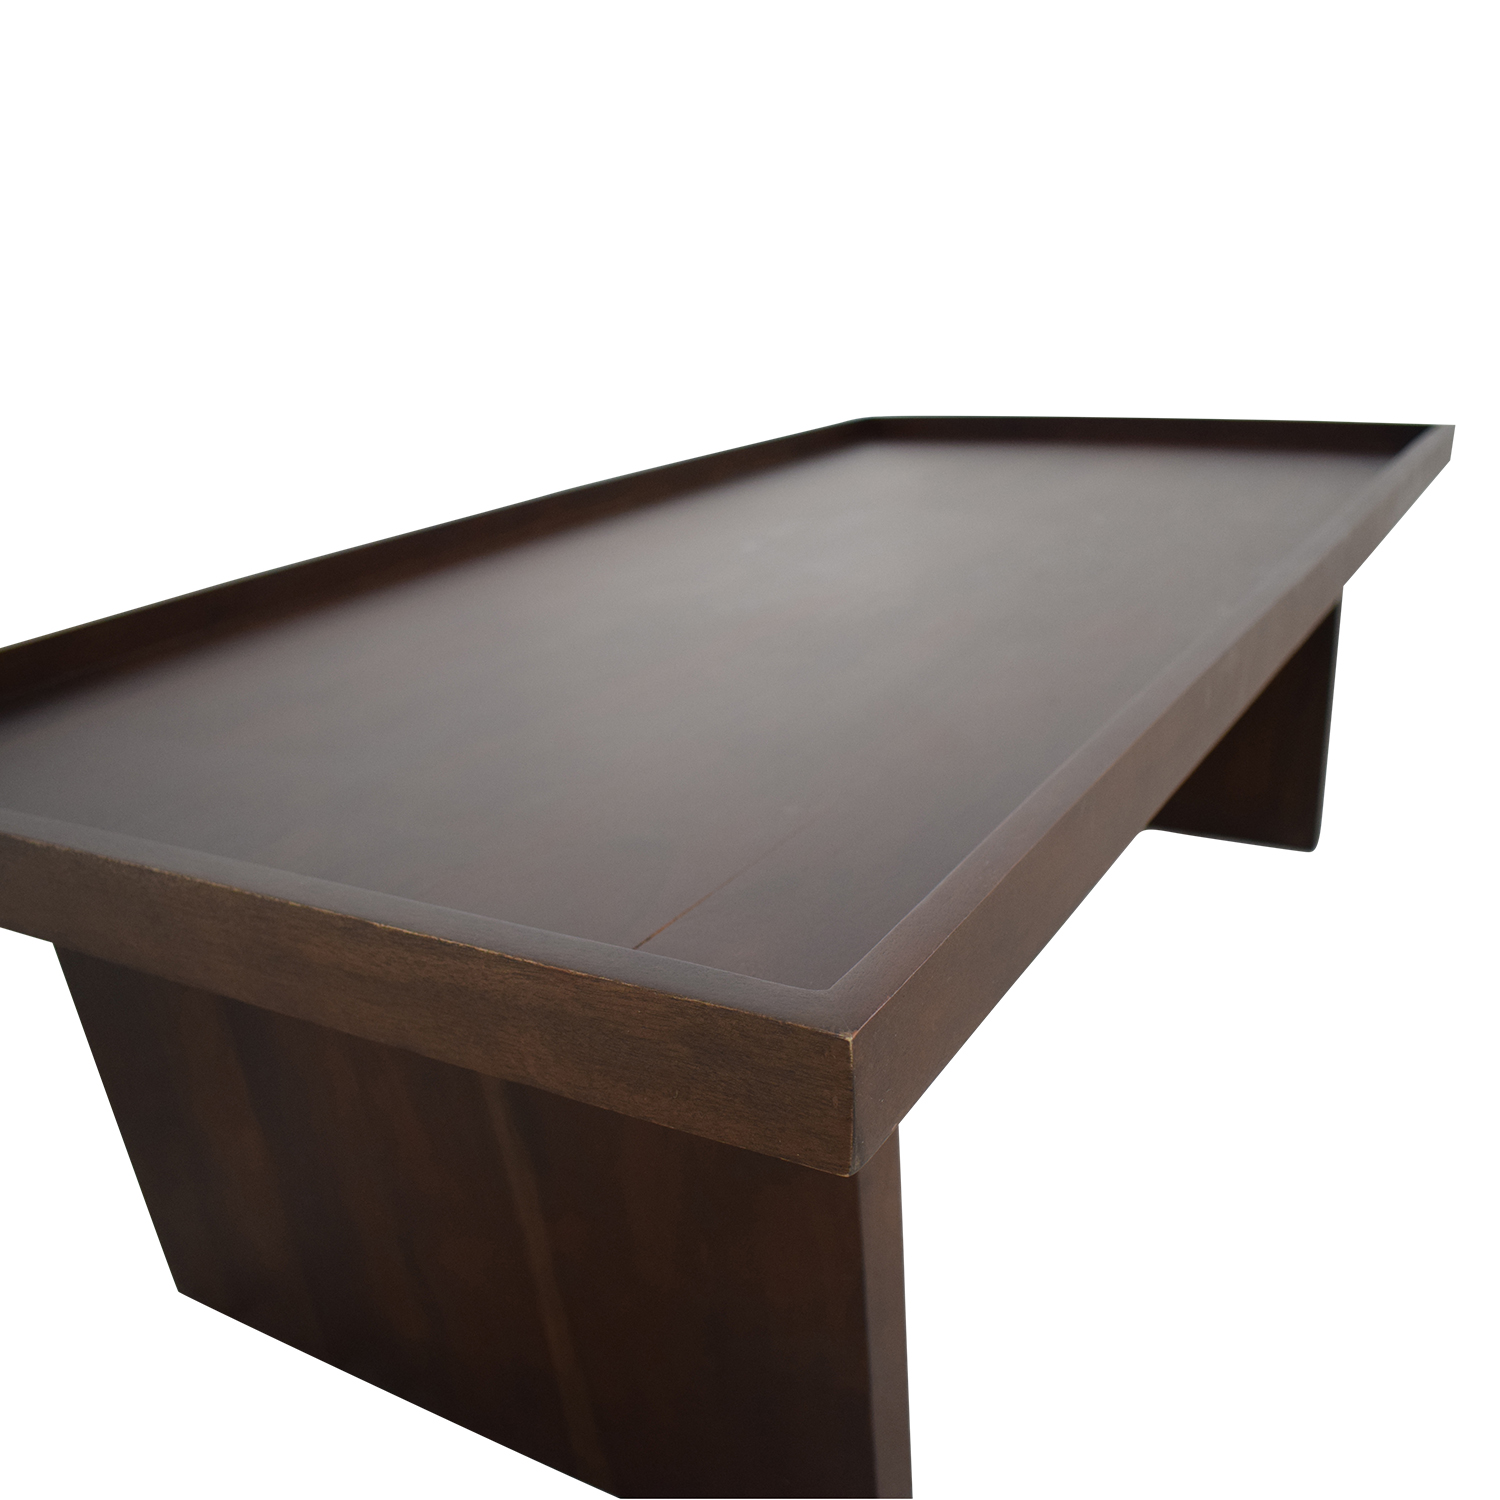 CB2 CB2 by Ross Cassidy Bento Coffee Table used